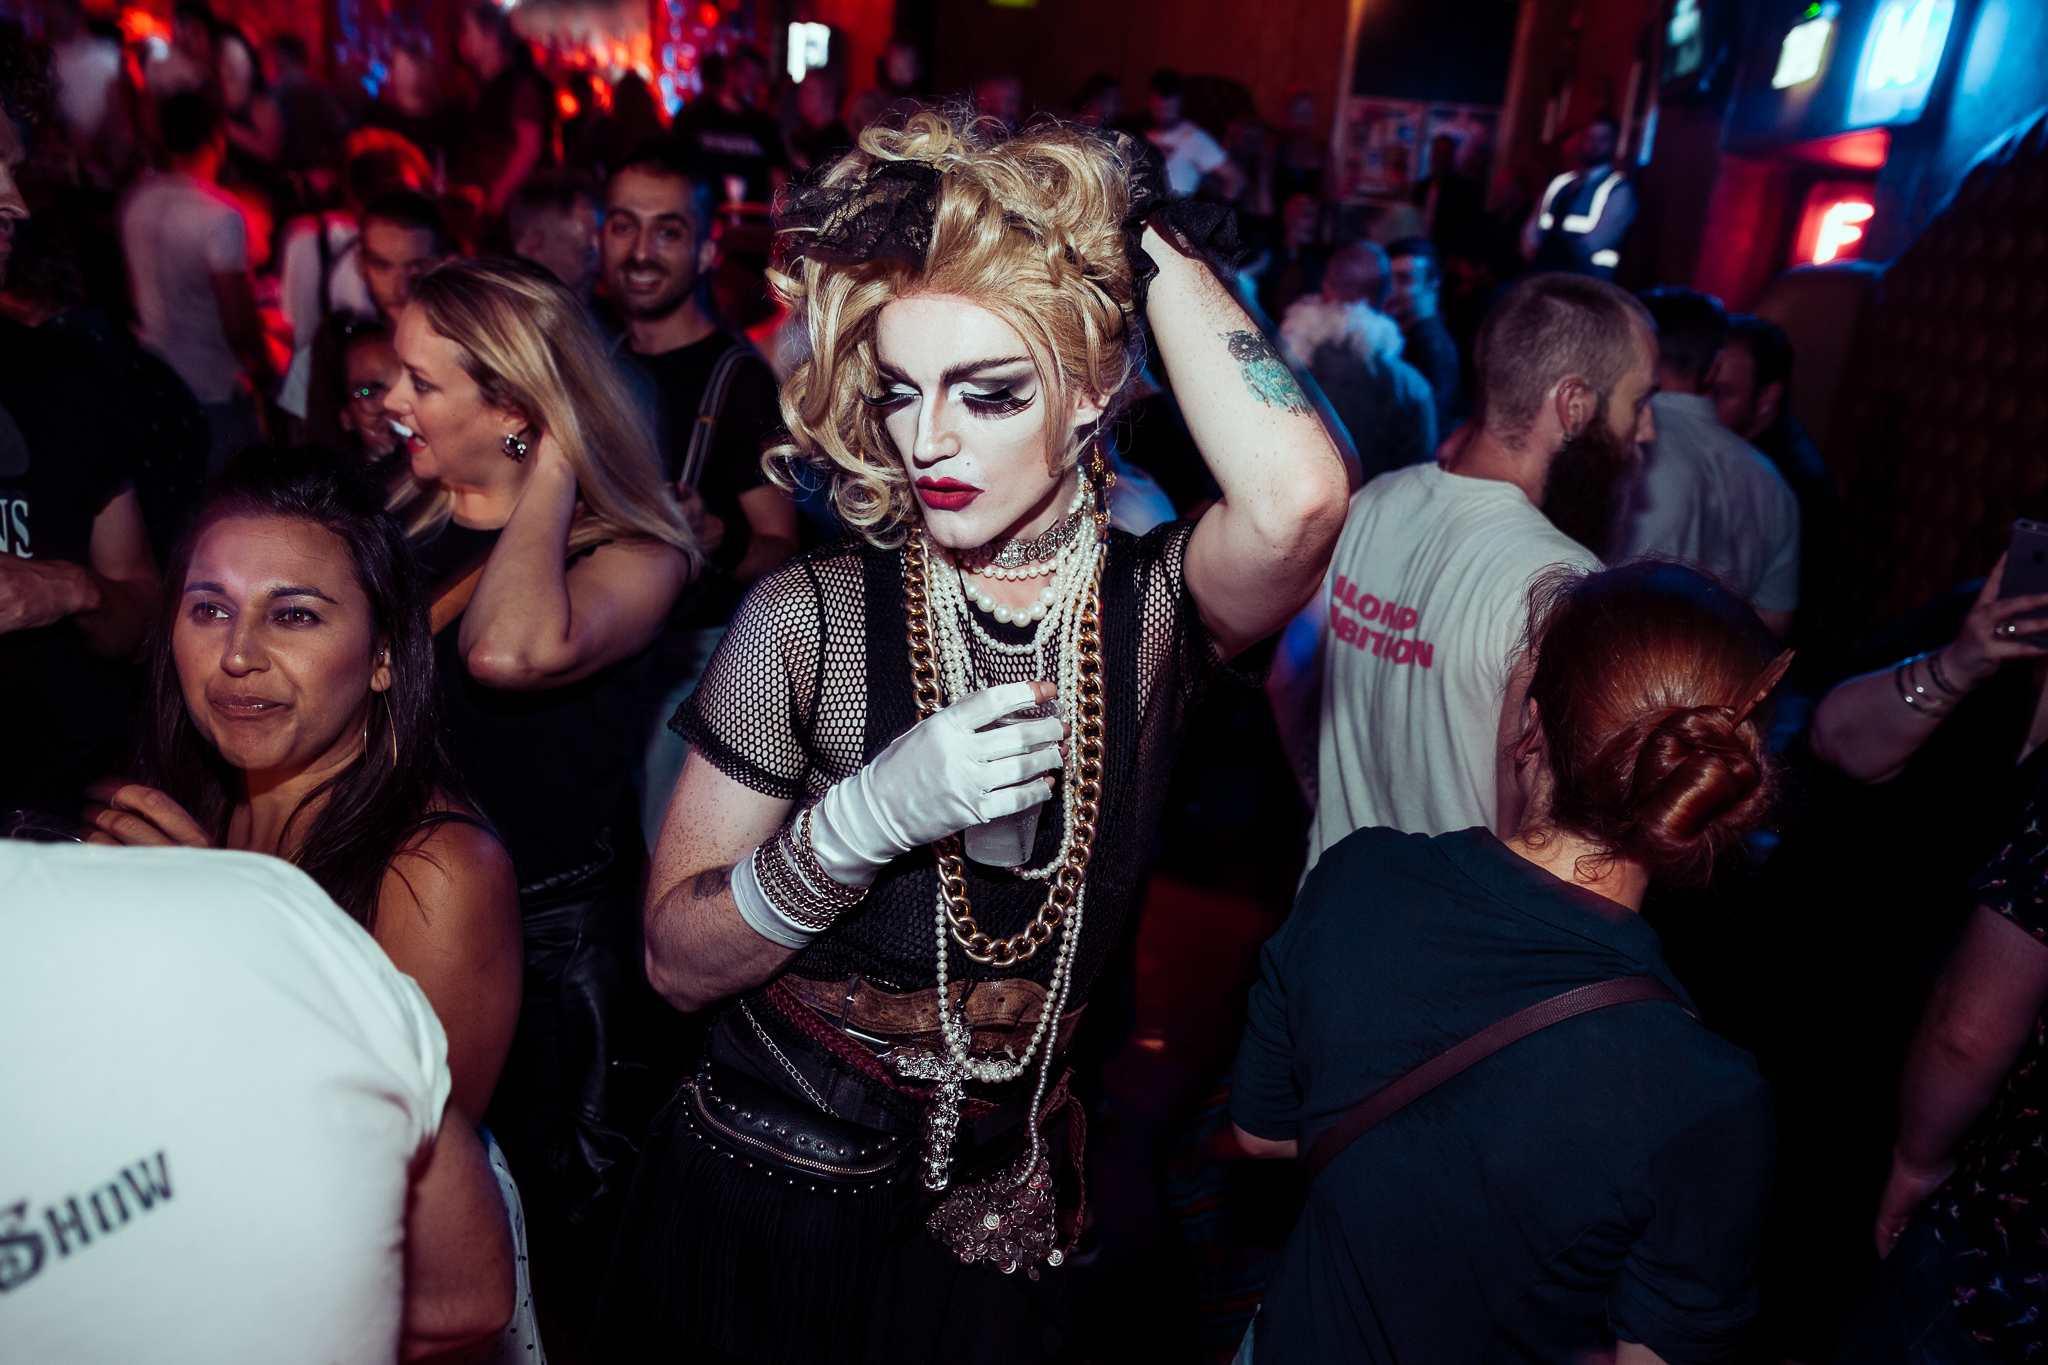 L-U-V MDNA Presents: Madame X at The Grand